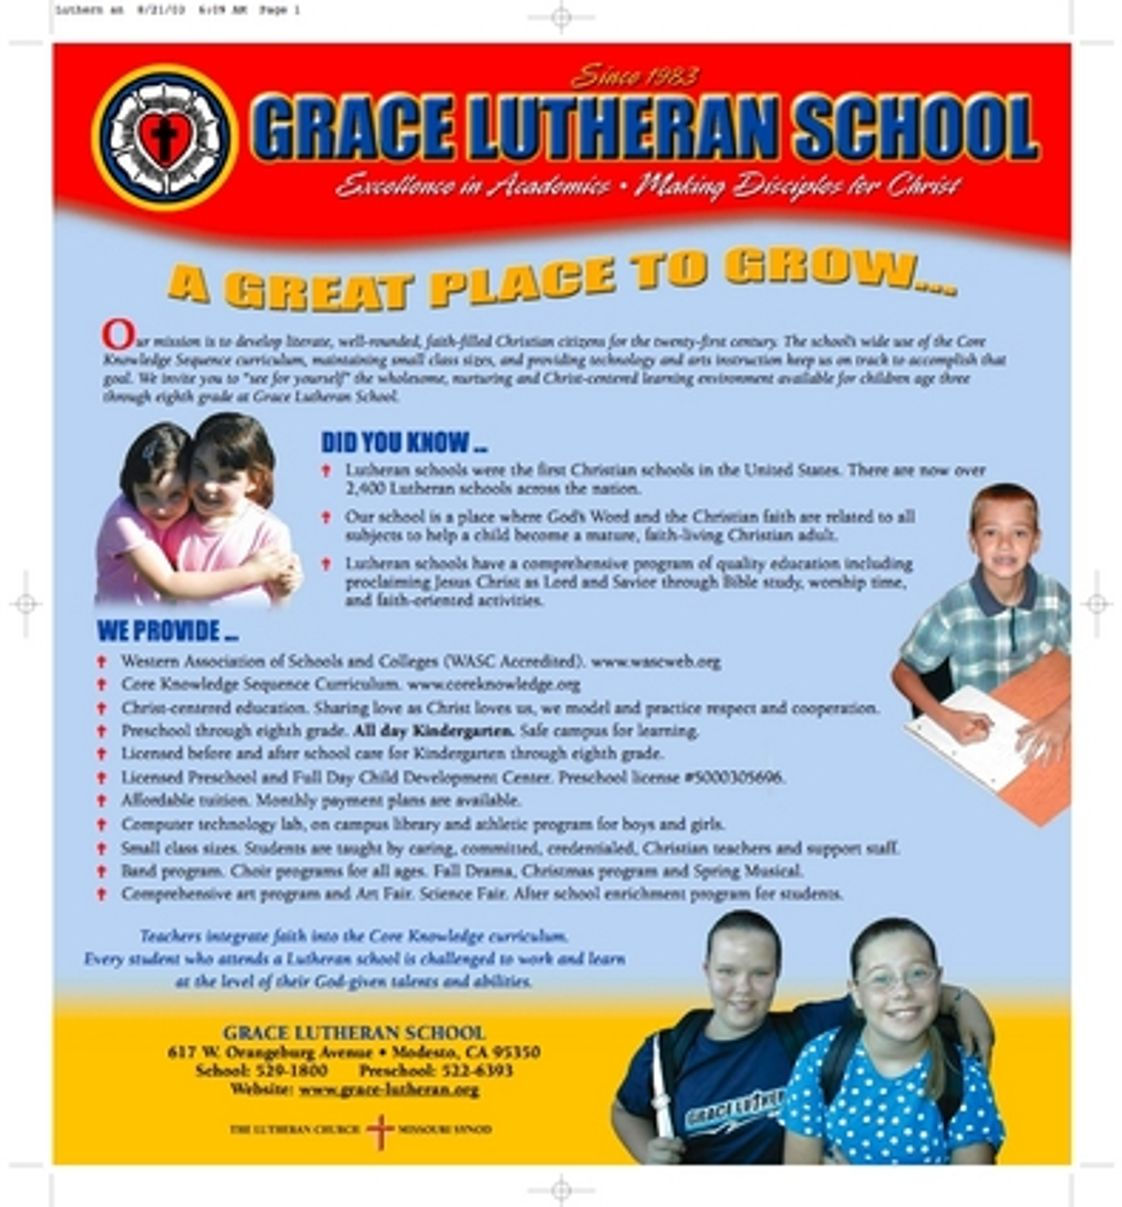 Grace Lutheran School Photo #1 - A whole page of details about the reasons GLS is the school to trust for your child's Christian education.